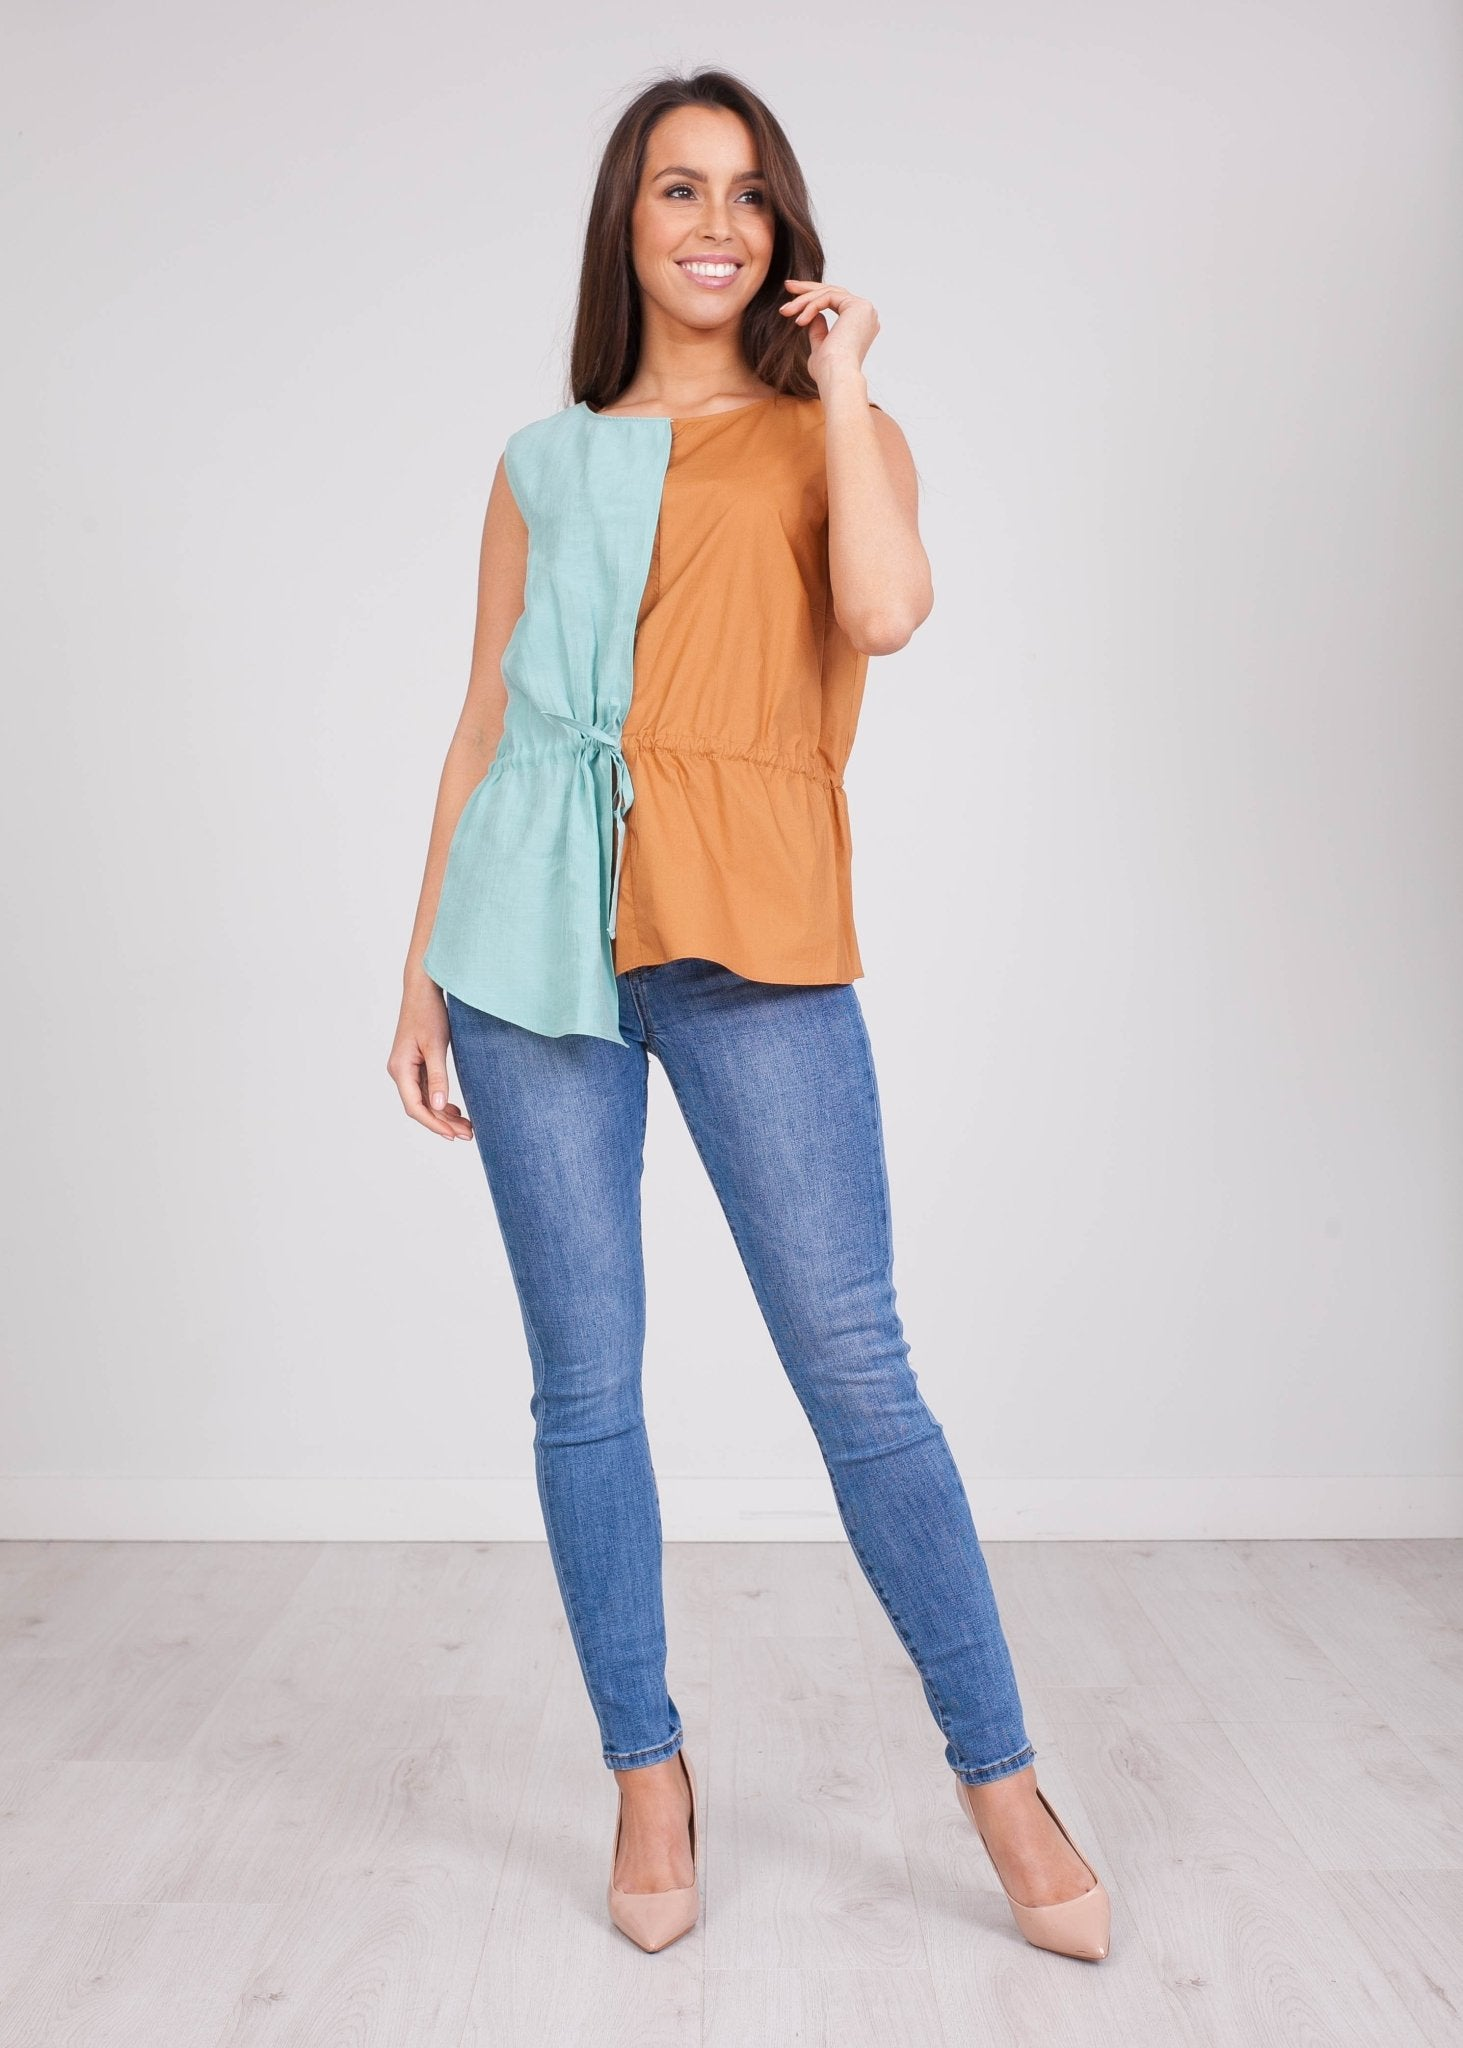 Savannah Mint & Tan Top - The Walk in Wardrobe